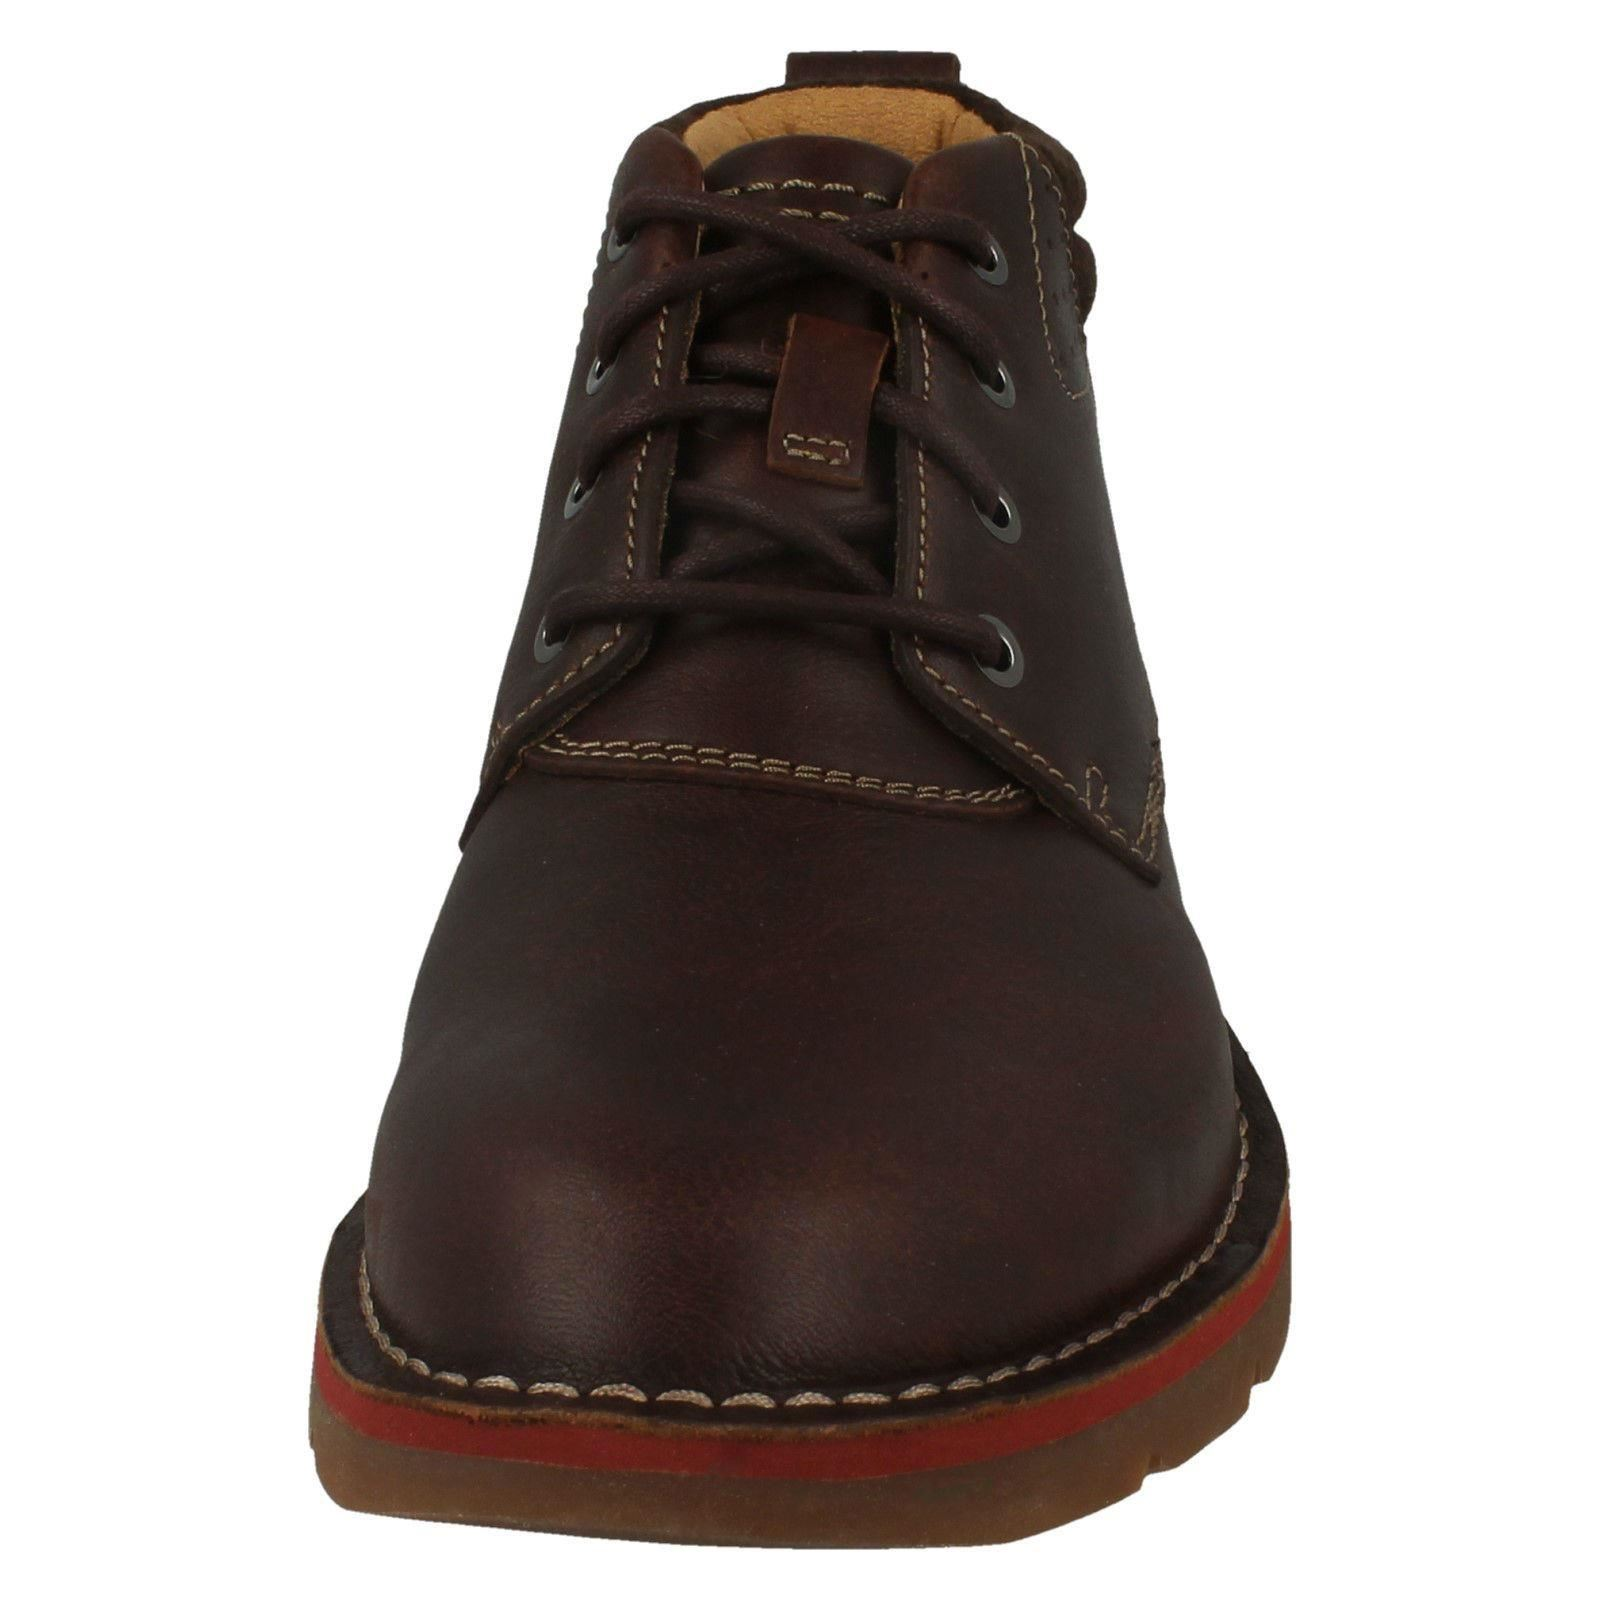 Mens-Clarks-Warm-Lined-Casual-Boots-039-Varick-Heal-039 thumbnail 10